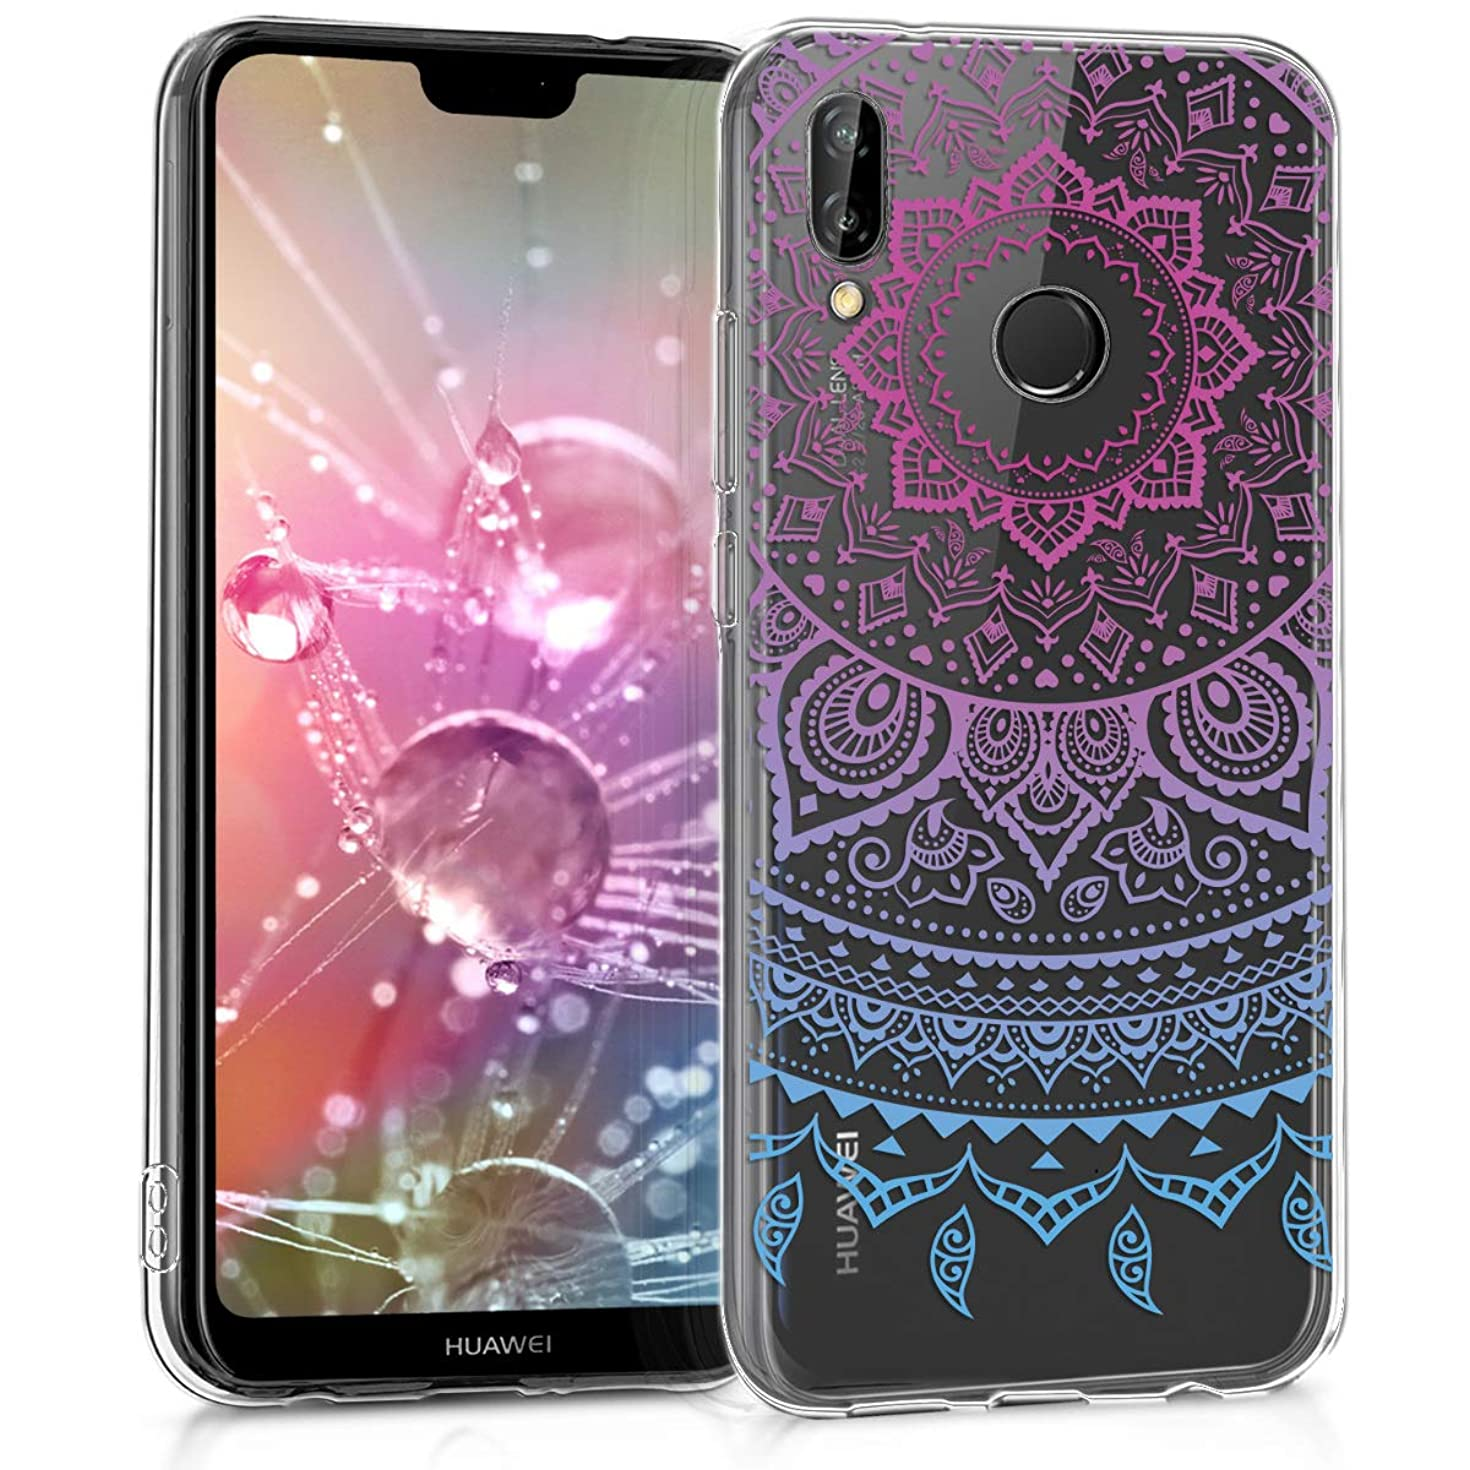 kwmobile TPU Silicone Case for Huawei P20 Lite - Crystal Clear Smartphone Back Case Protective Cover - Blue/Dark Pink/Transparent